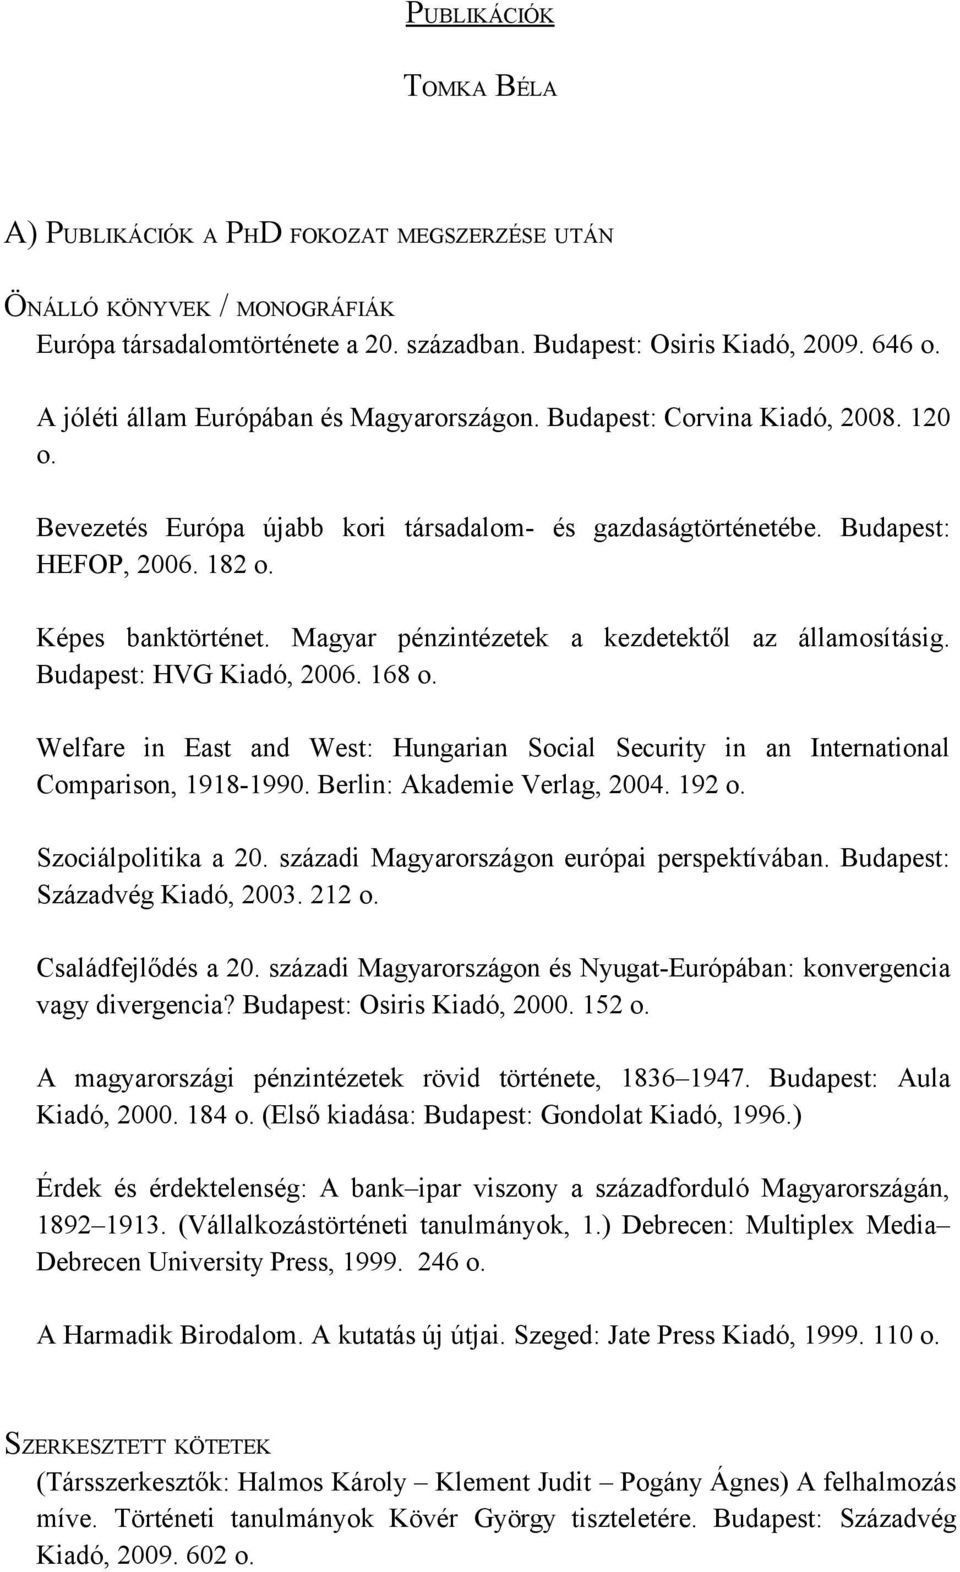 Magyar pénzintézetek a kezdetektől az államosításig. Budapest: HVG Kiadó, 2006. 168 o. Welfare in East and West: Hungarian Social Security in an International Comparison, 1918-1990.